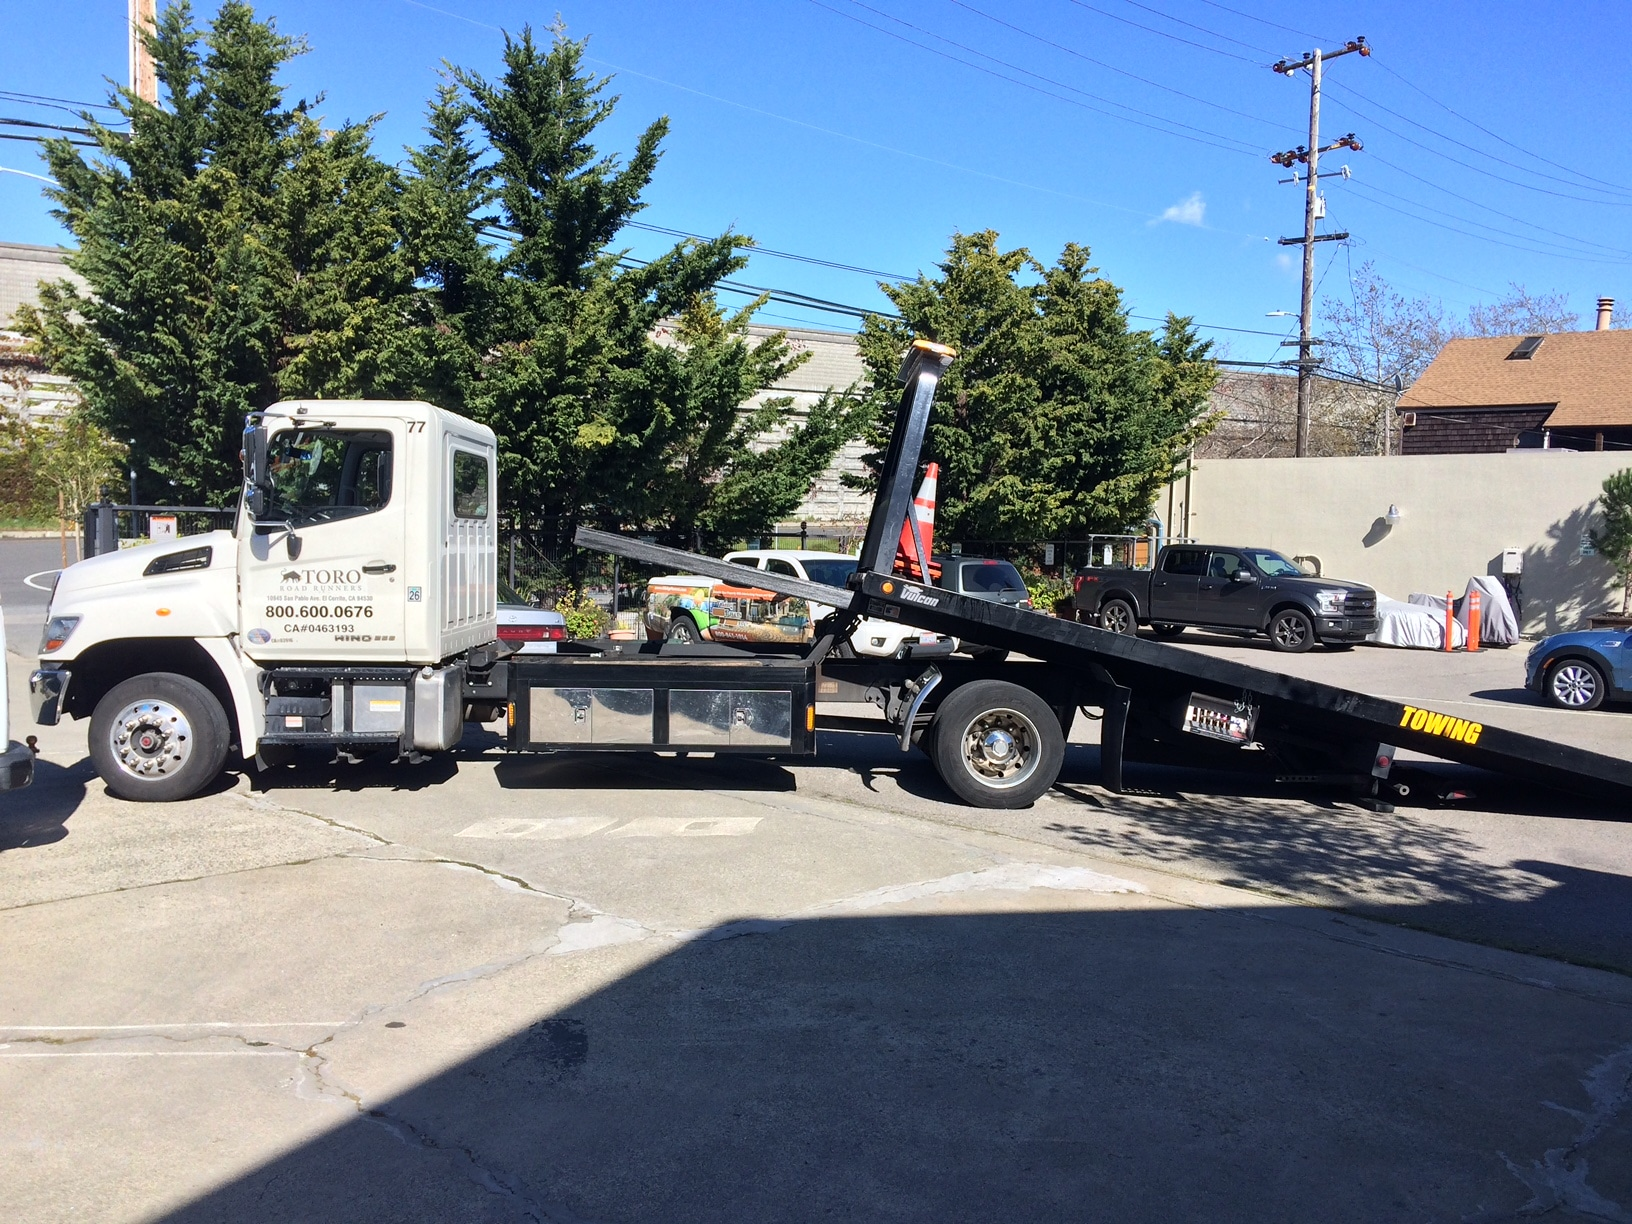 Professional Towing in the Bay Area